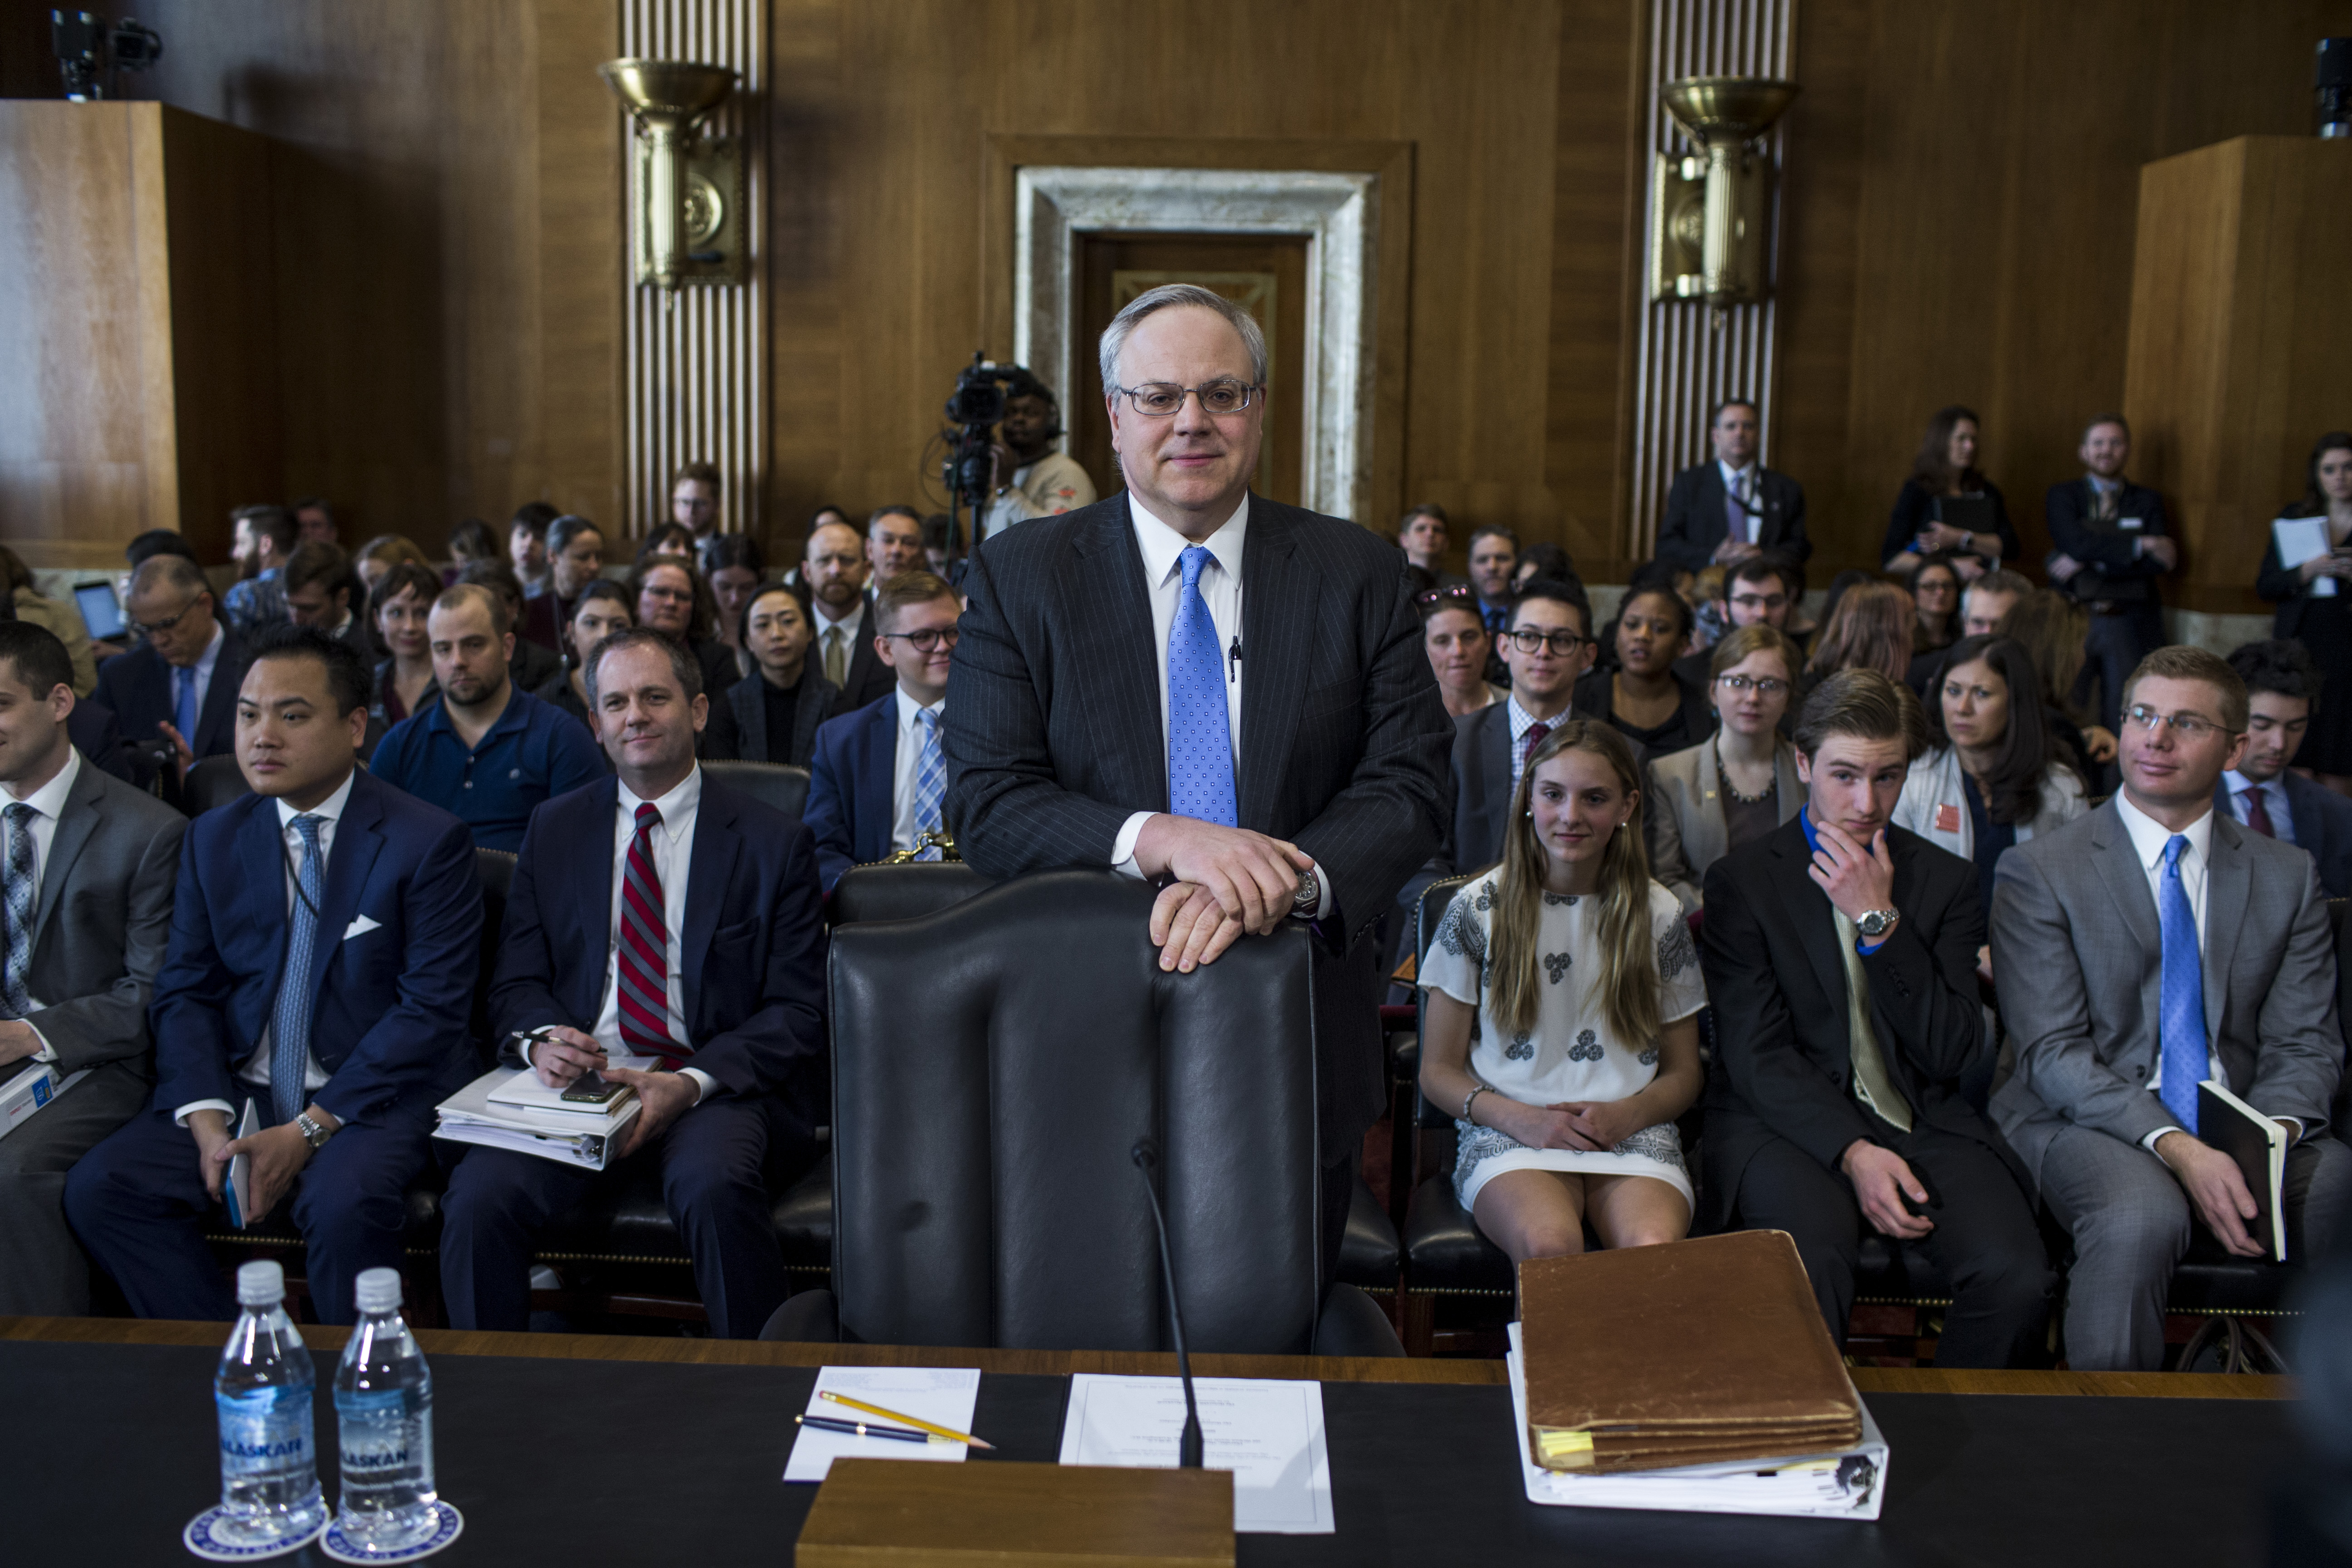 David Bernhardt, President Donald Trump's nominee to be Interior Secretary, arrives before testifying during a Senate Energy and Natural Resources Committee confirmation hearing on March 28, 2019 in Washington, DC.